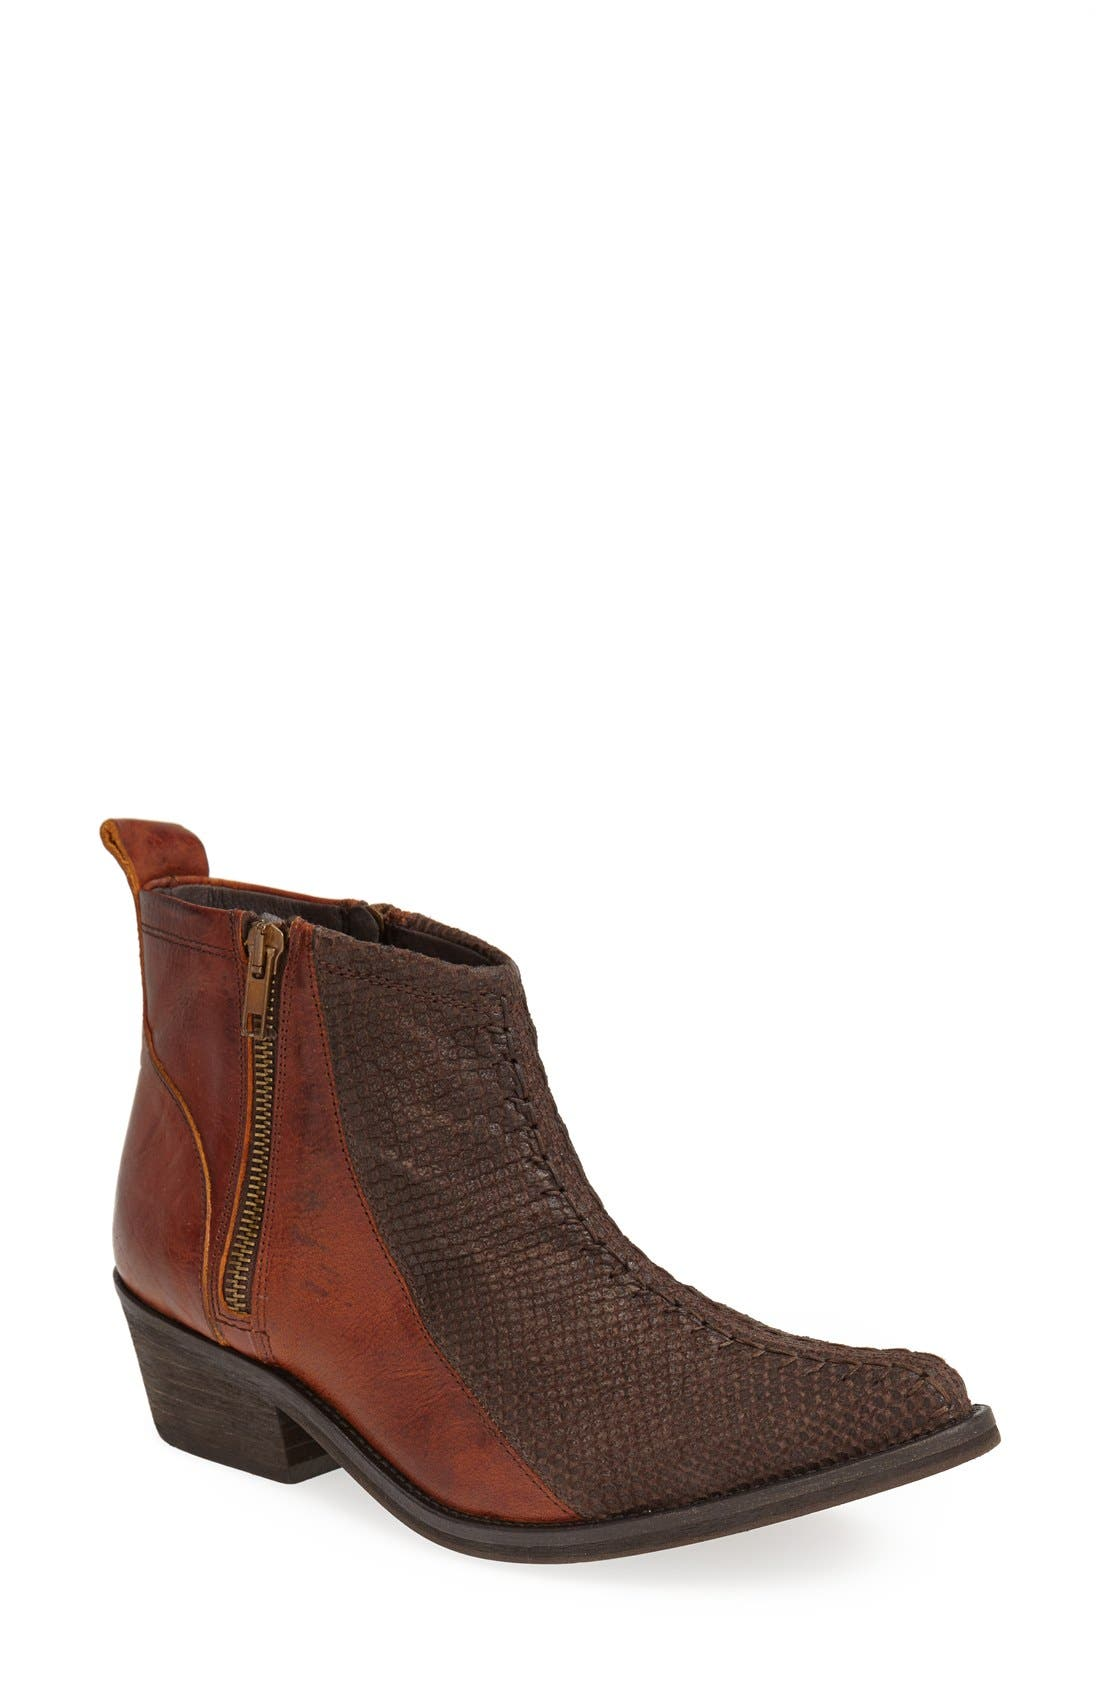 Main Image - Free People 'Flying Ranch' Pointy Toe Bootie (Women)